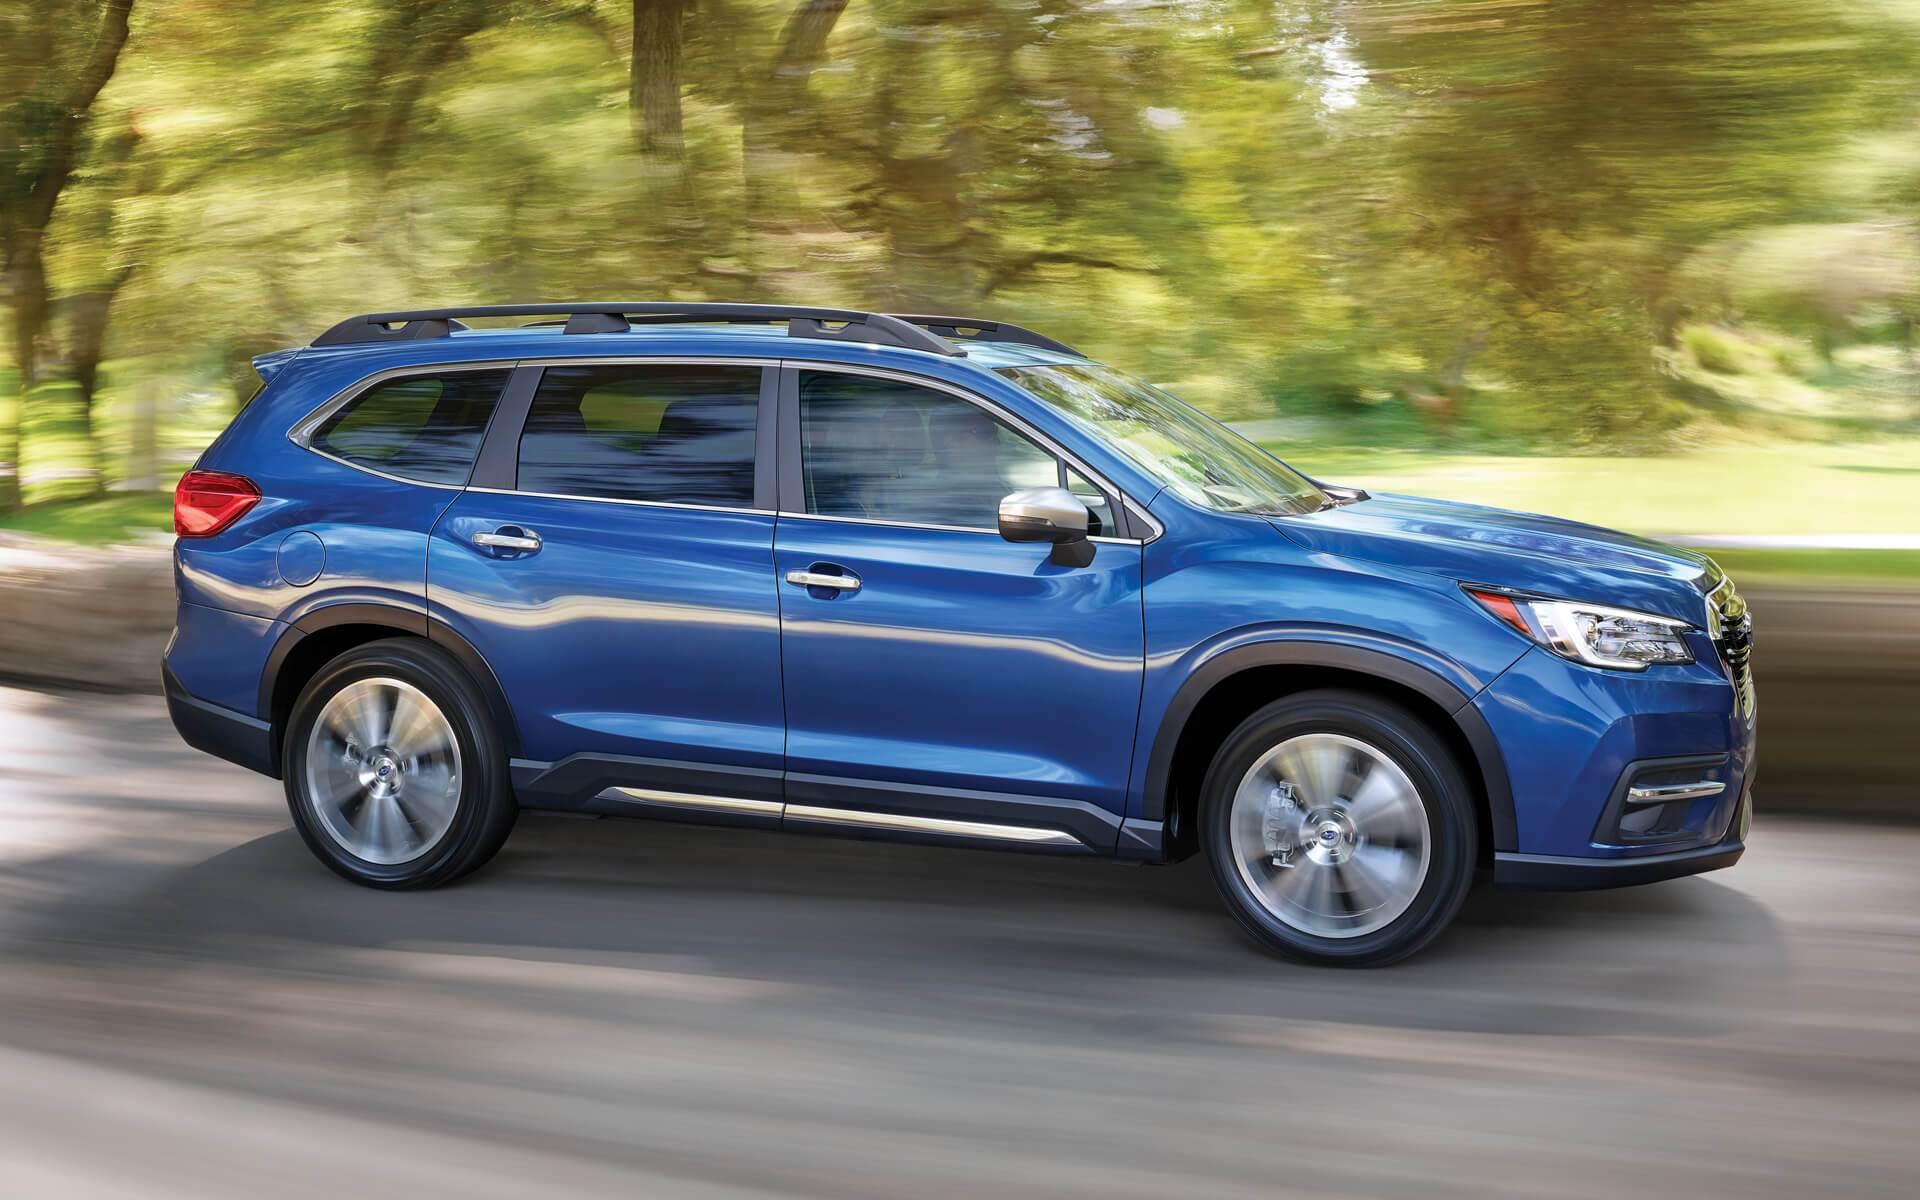 2019 Subaru Ascent Blue Color On Road In Speed Blur Background 4k